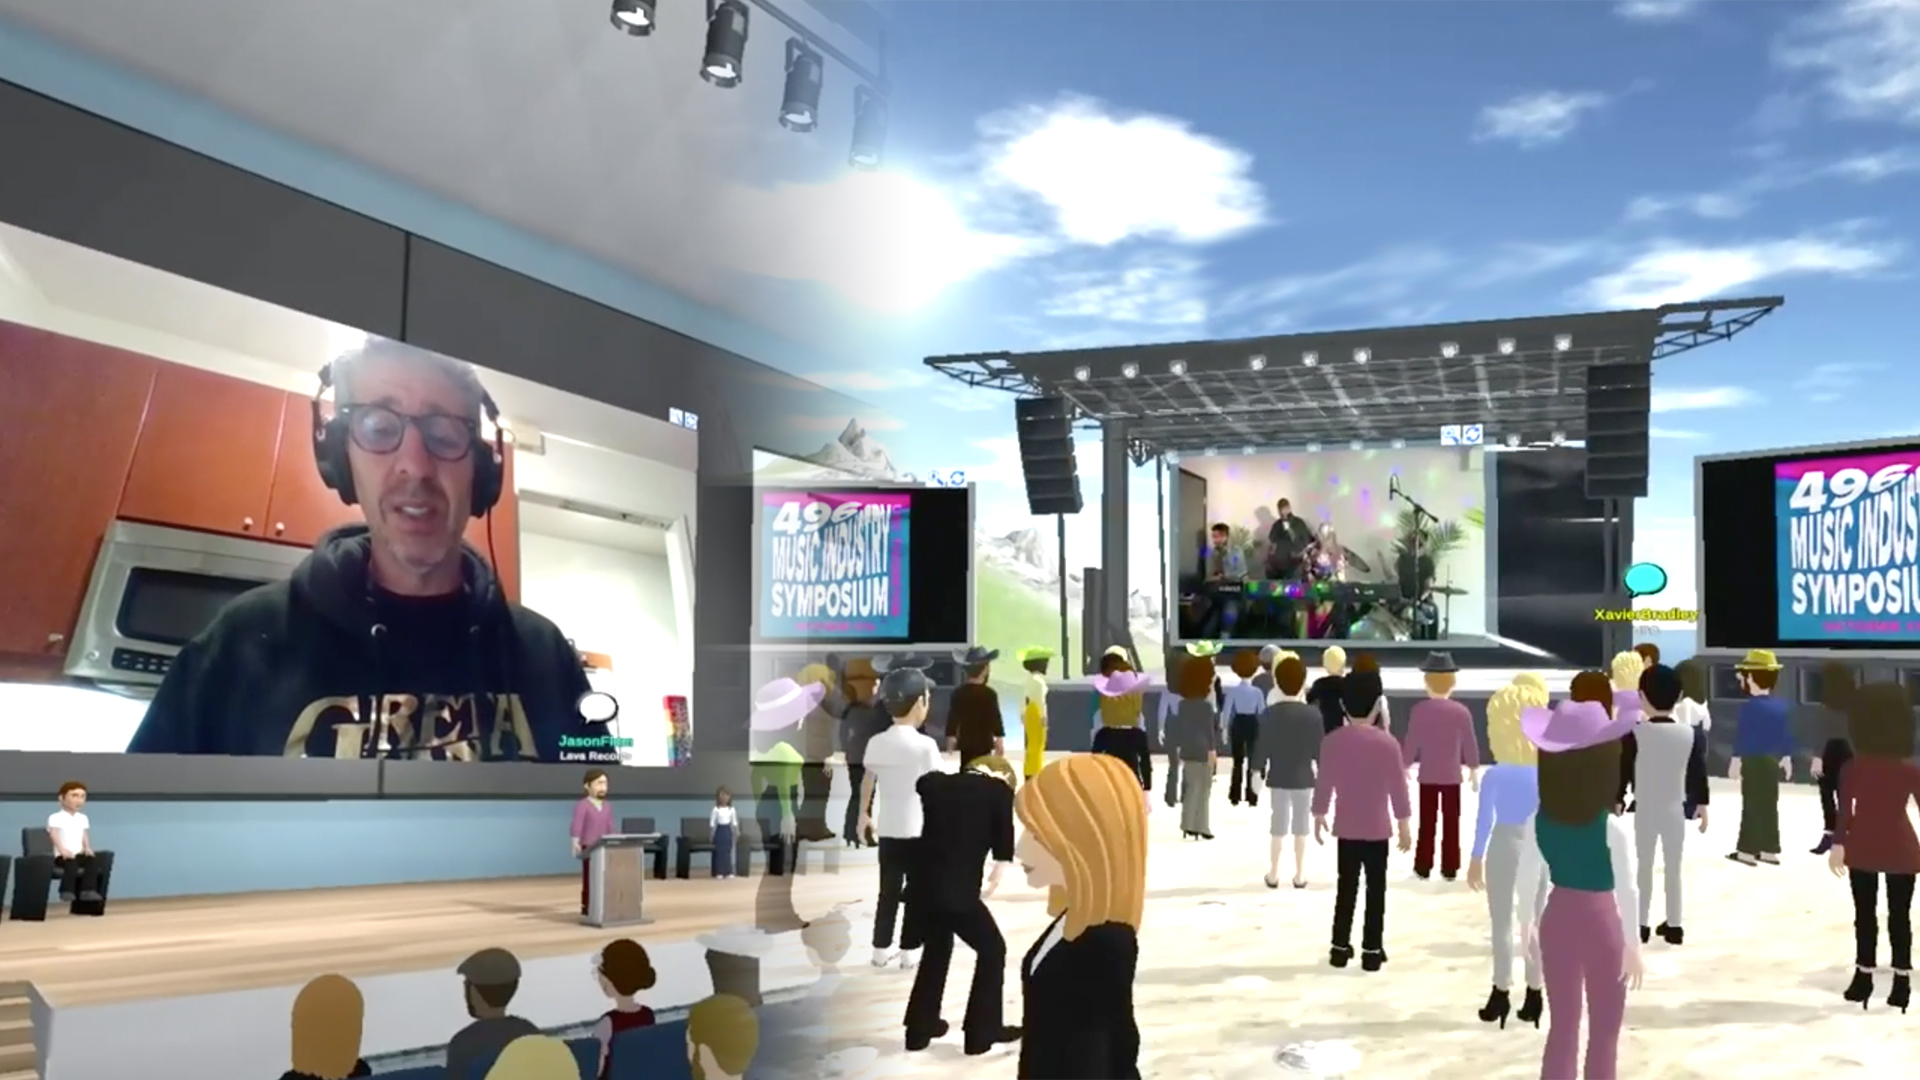 A composite image shows an animated concert video with virtual avatars watching a show, beside a virtual conference room